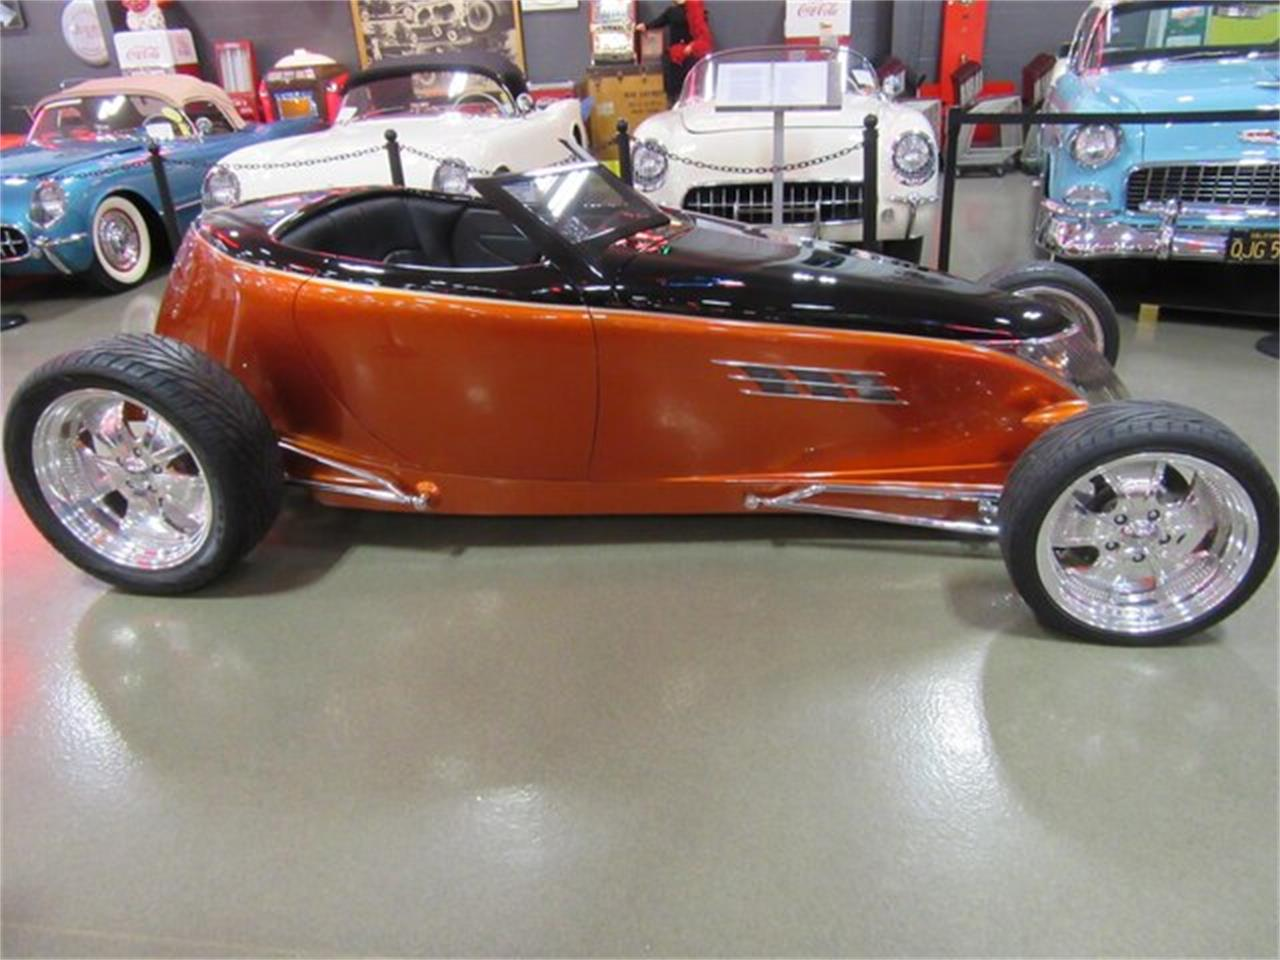 2006 Custom Roadster for sale in Greenwood, IN – photo 12